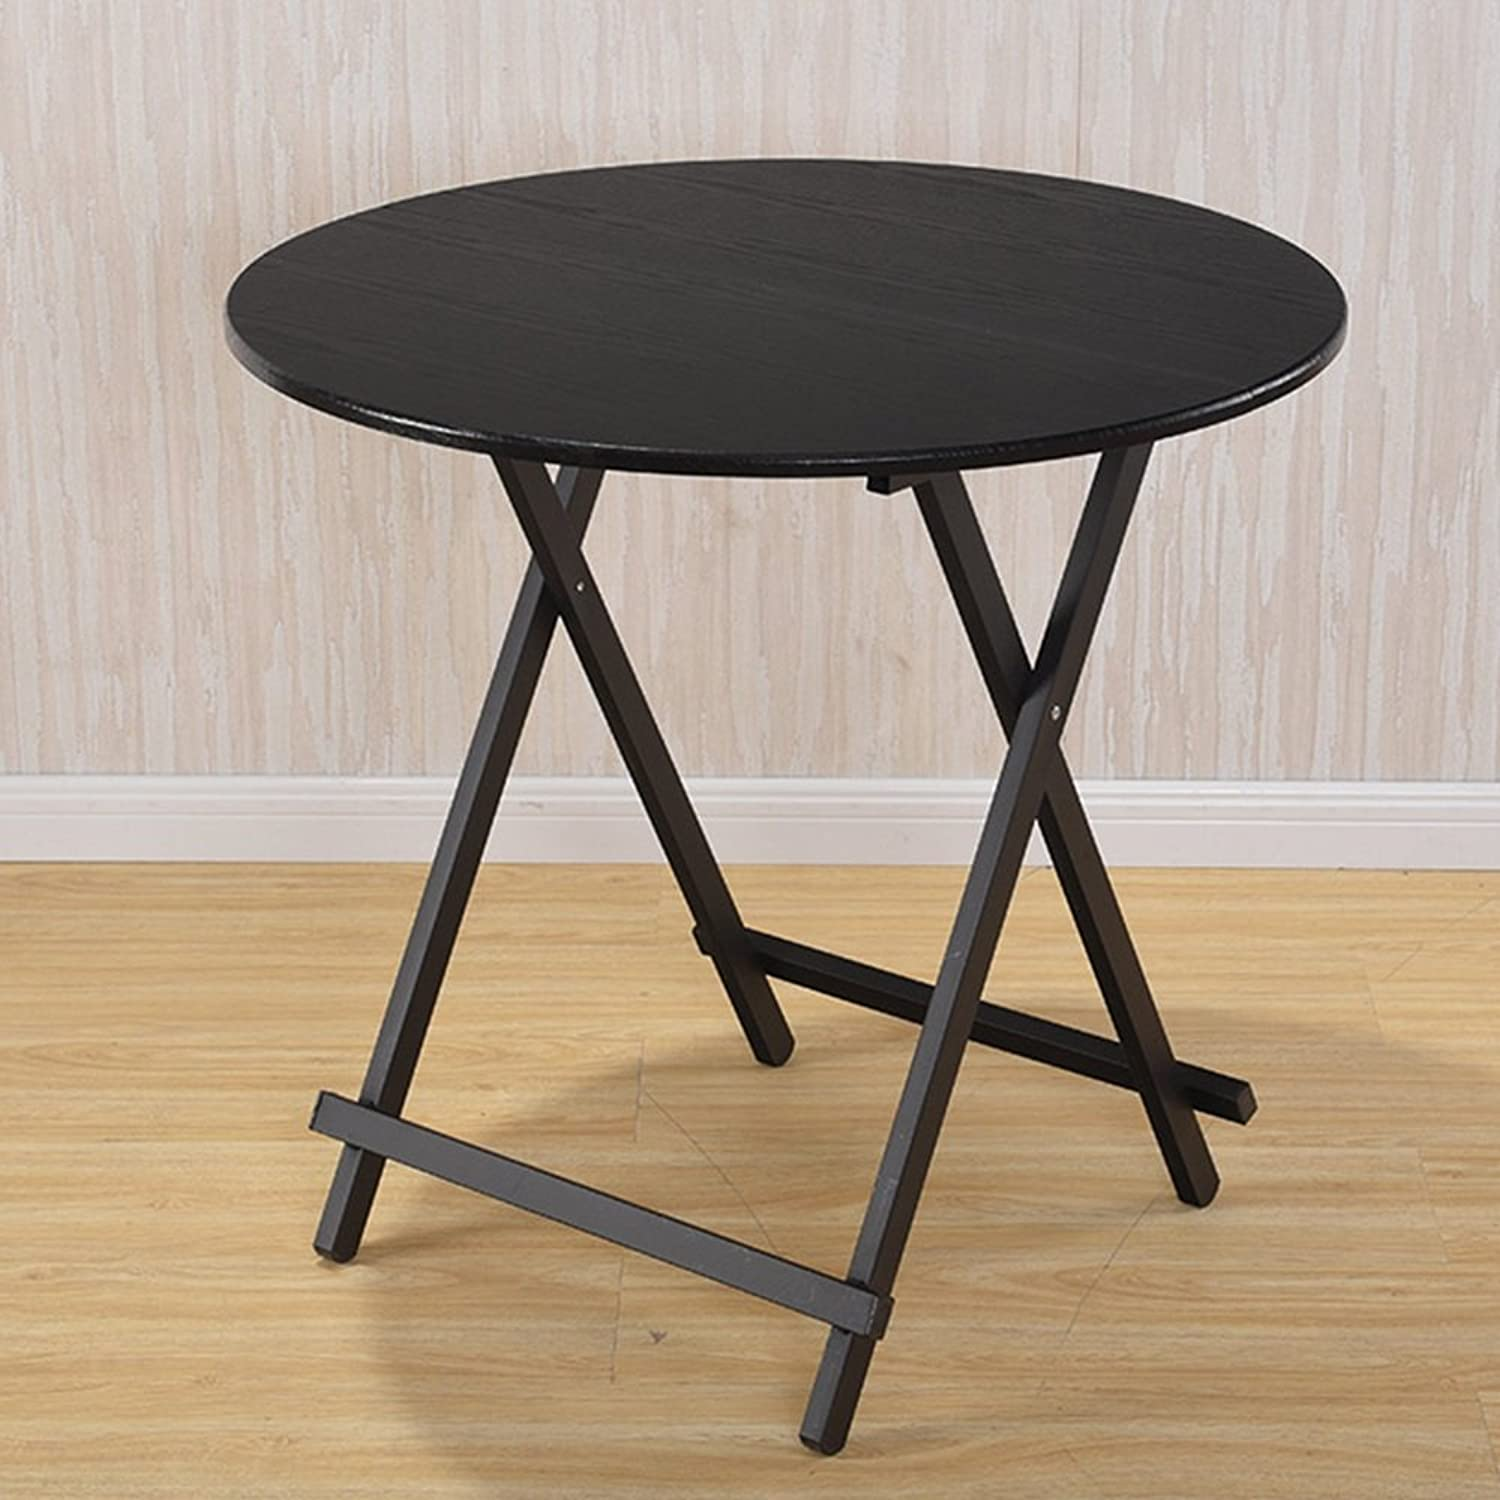 DQMSB Folding Table Small Round Table Dining Table Student Table Simple Table Writing Desk (color   Black, Size   80  74cm)